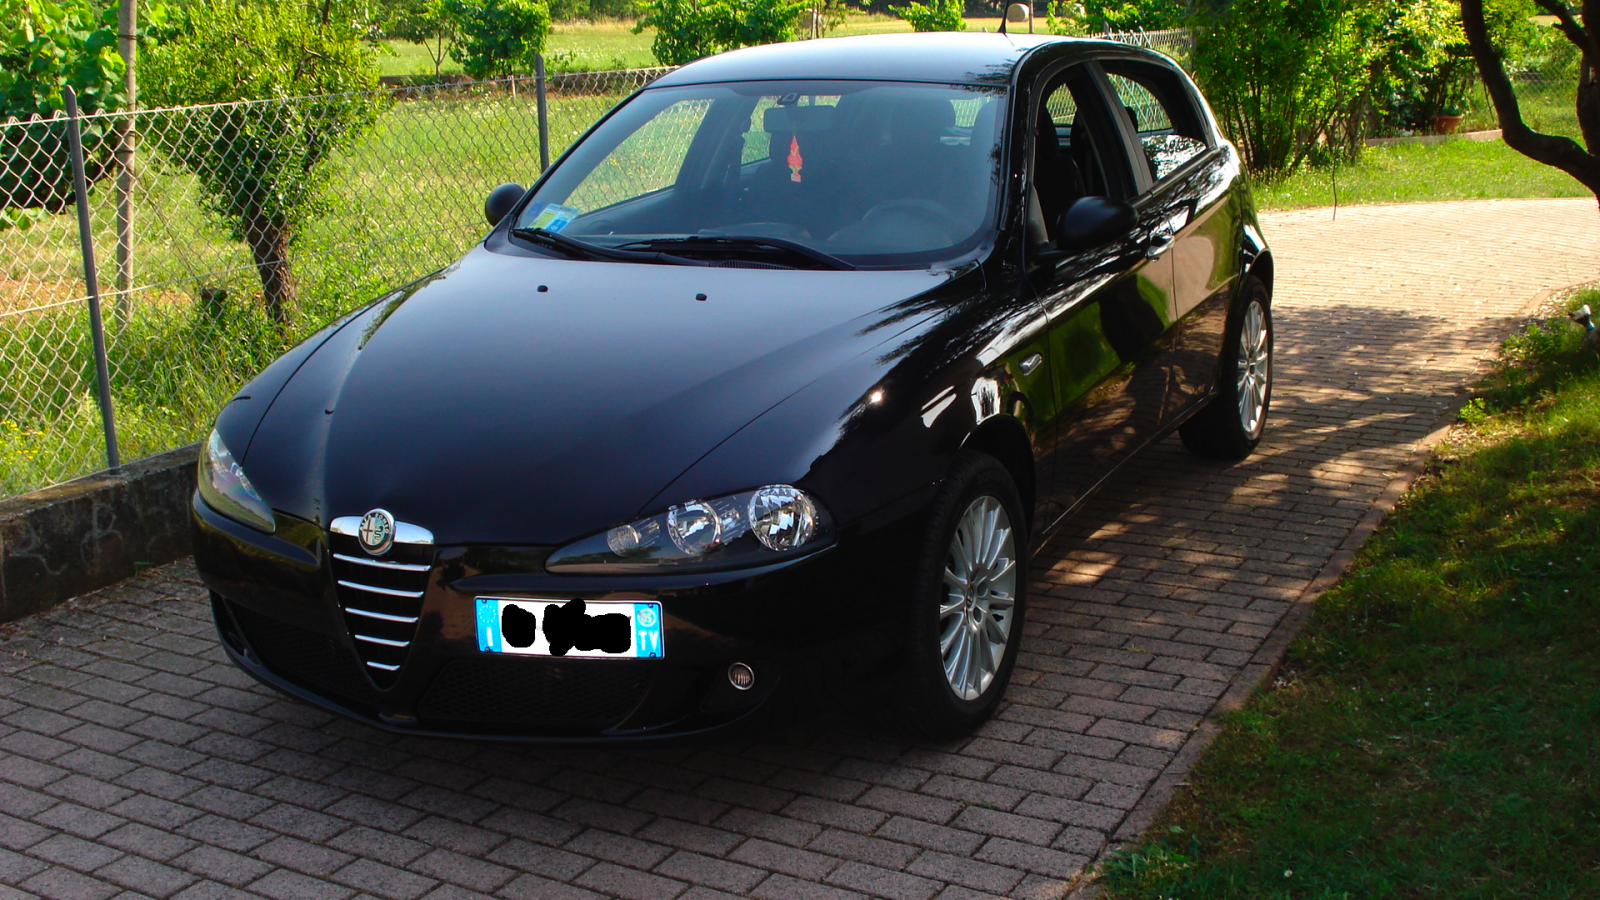 alfa romeo 147 1 9 jtd 115 cv nera club alfa forum alfa romeo. Black Bedroom Furniture Sets. Home Design Ideas